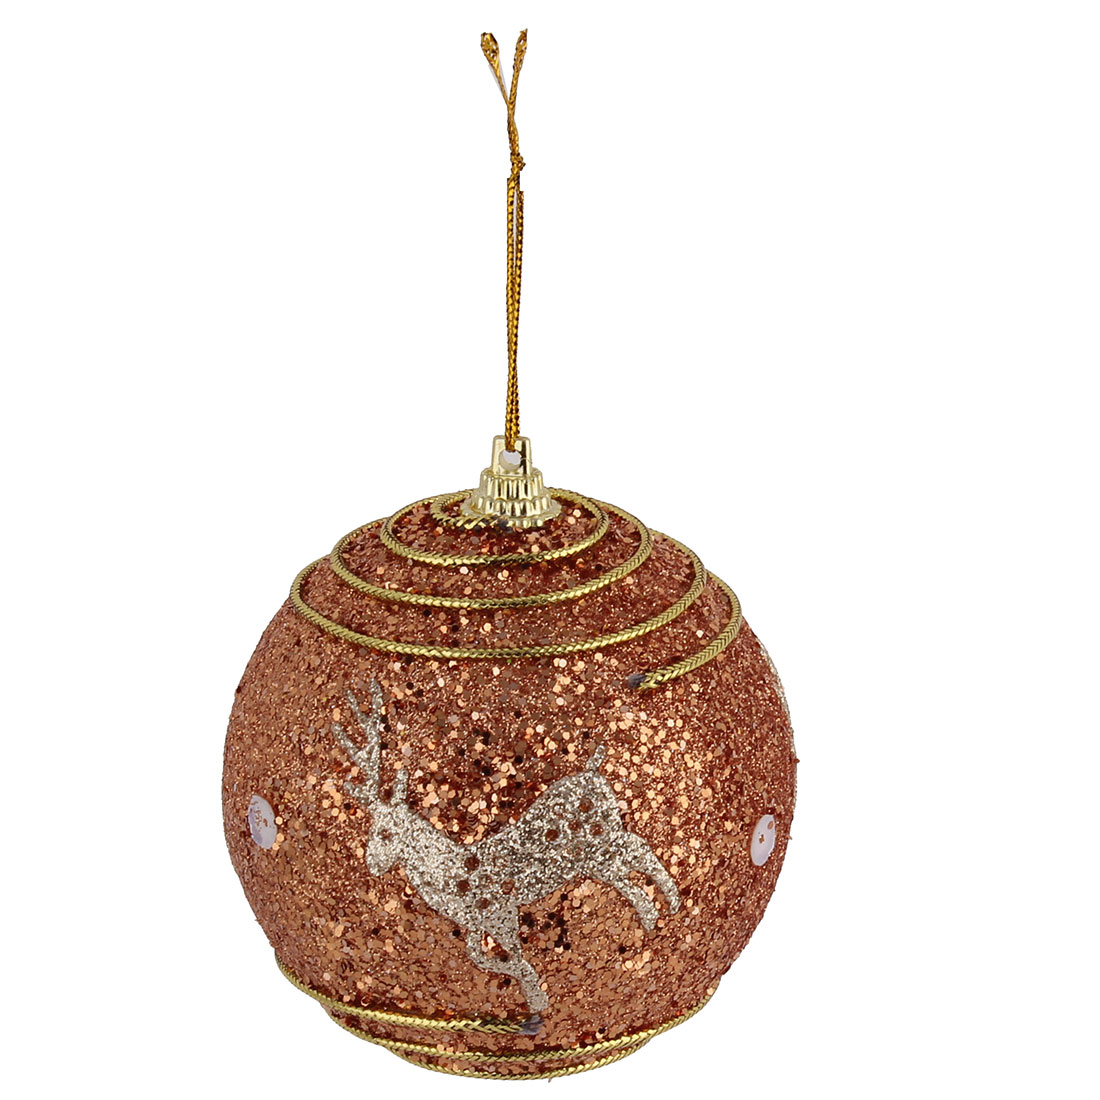 Unique Bargains Home Christmas Deer Pattern Spiral Decor Artificial Collectible Hanging Ball